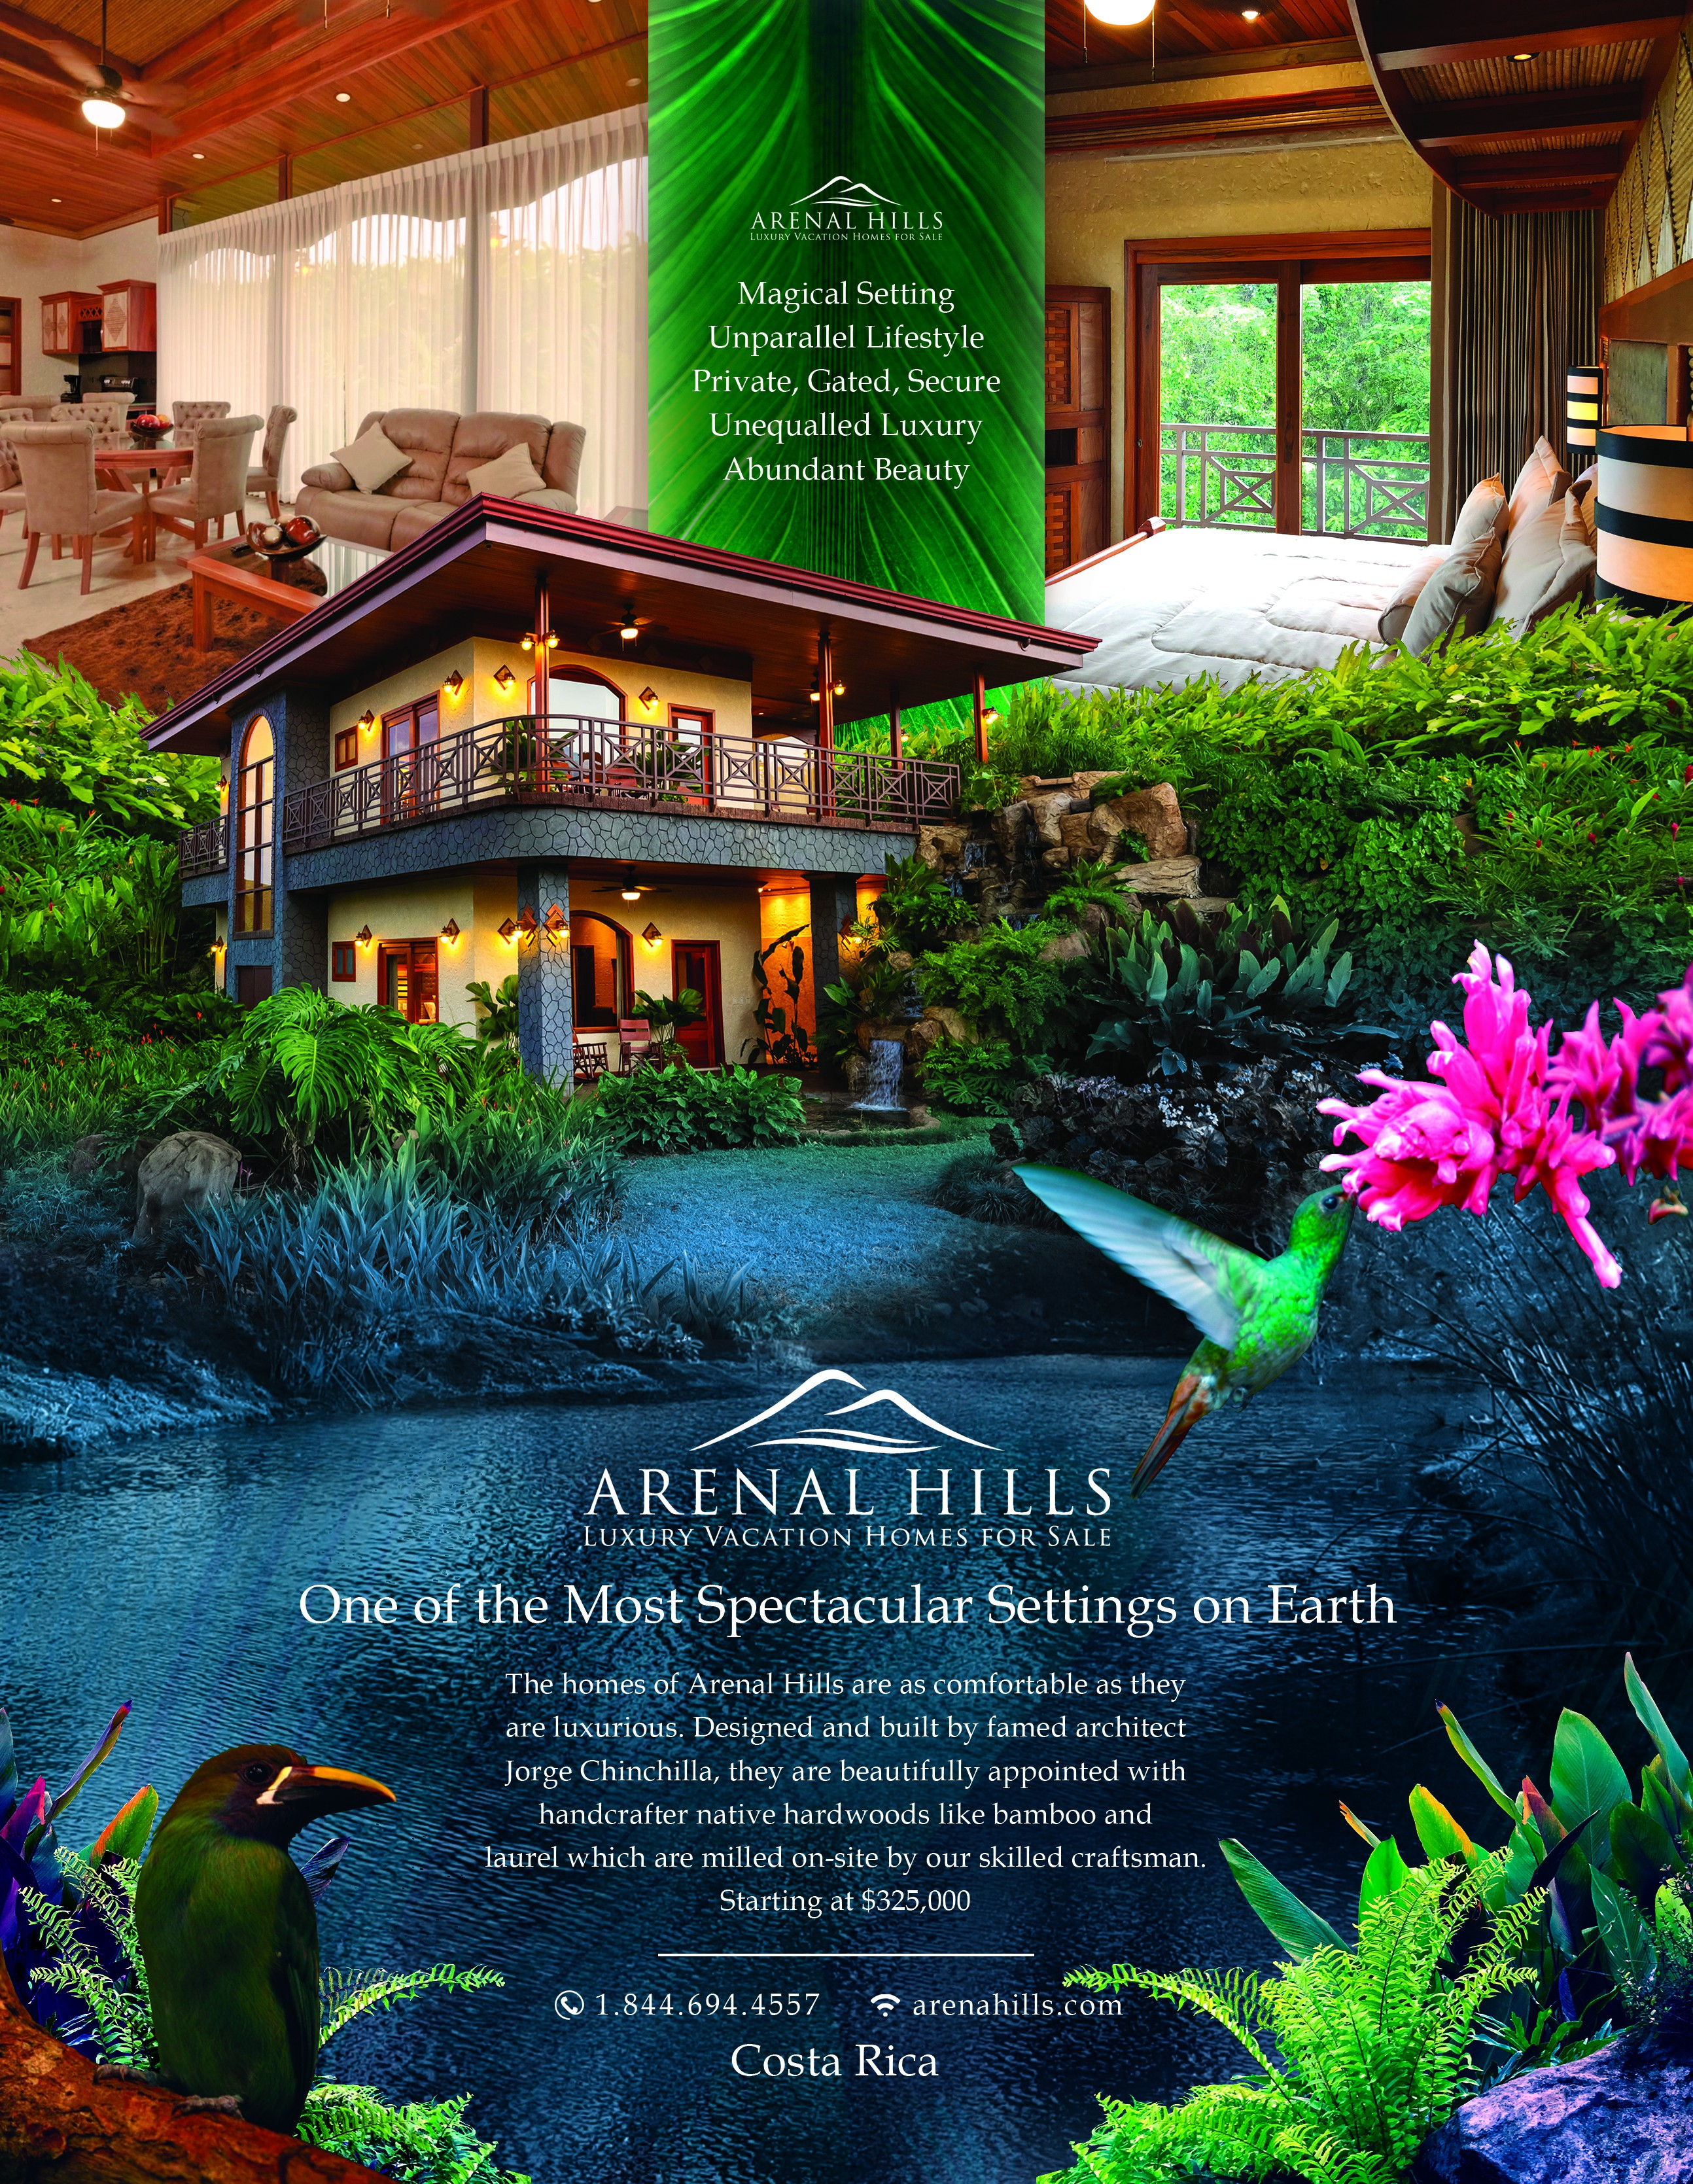 Magazine Ad, Full Page, For Luxury Home Community in Costa Rica